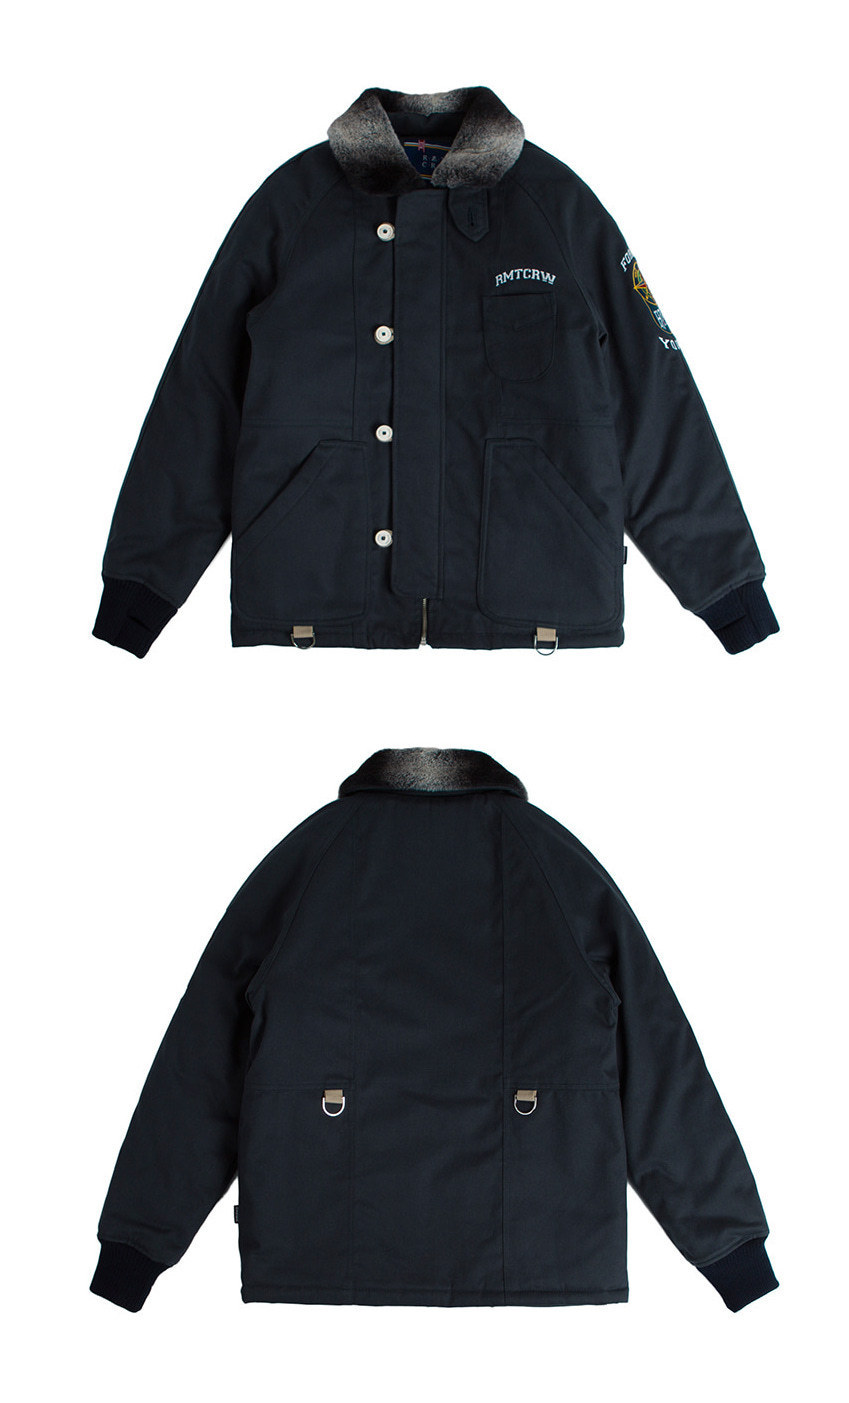 日本未発売 [ROMANTIC CROWN] Forever Young 6oz Deck Jacket